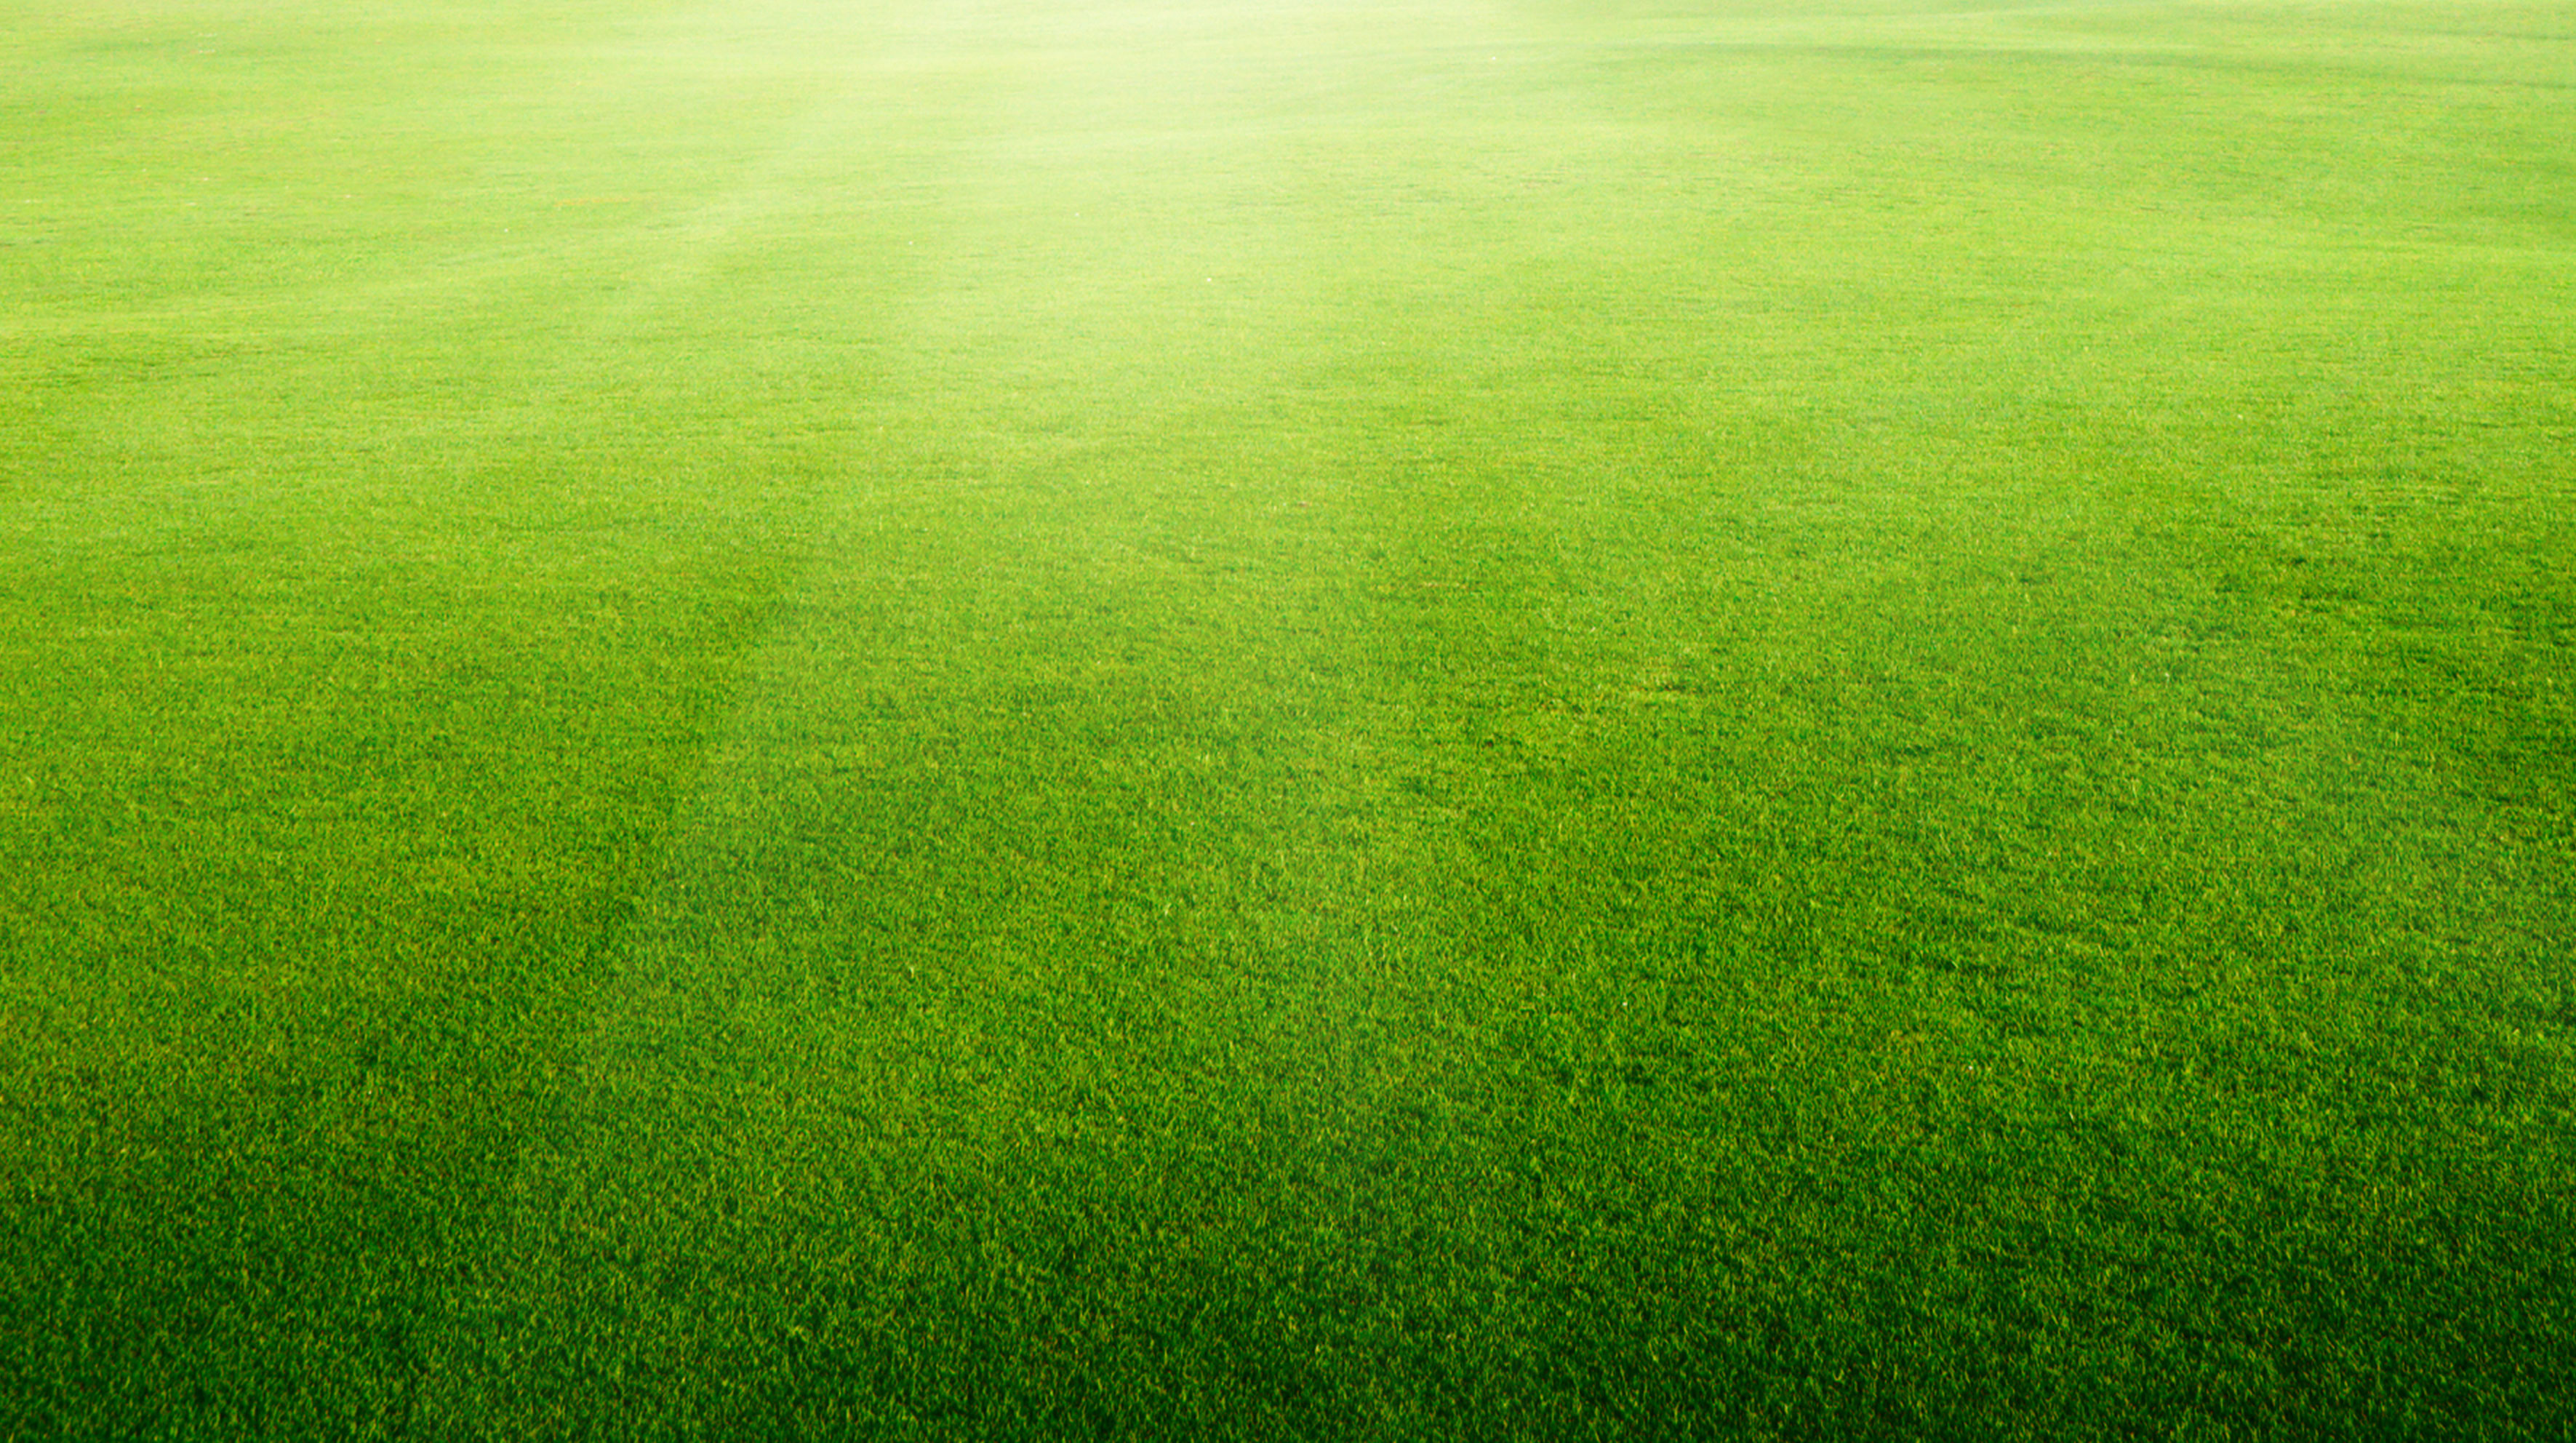 photo Artificial grass background   Lawn Indoor Material 3542x1984